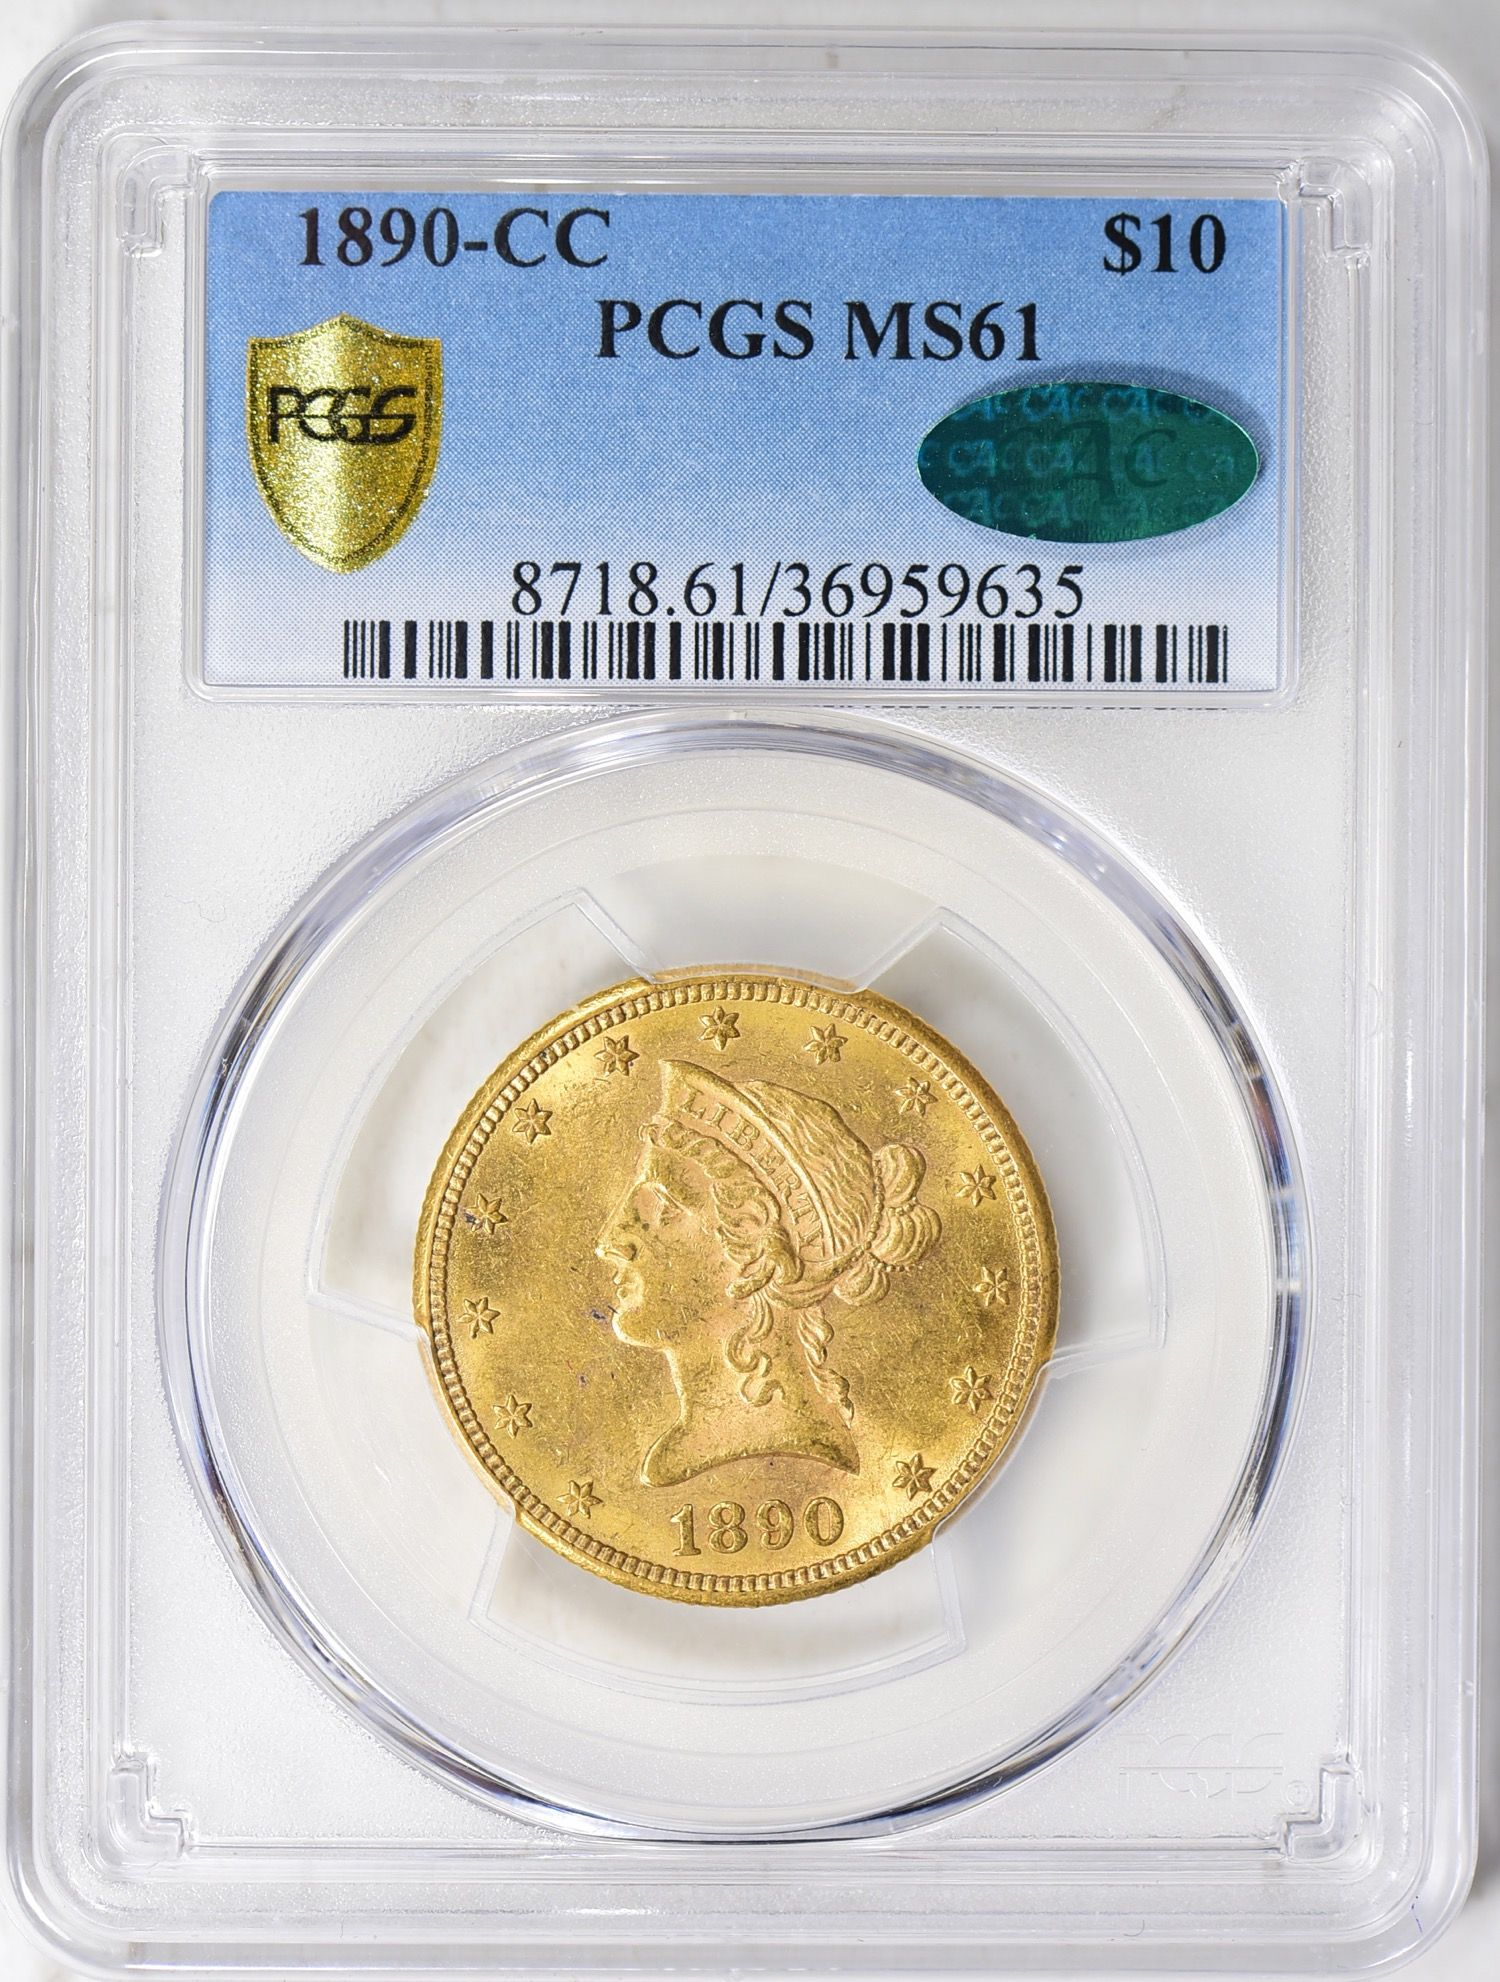 1890 Cc Liberty Gold Eagle Pcgs Ms 61 Cac Goldeagles Libertygoldeagles Pcgs Eagle Goldeagle Tendollars Ten Cappedbustrig Coin Auctions Sell Coins Pcgs